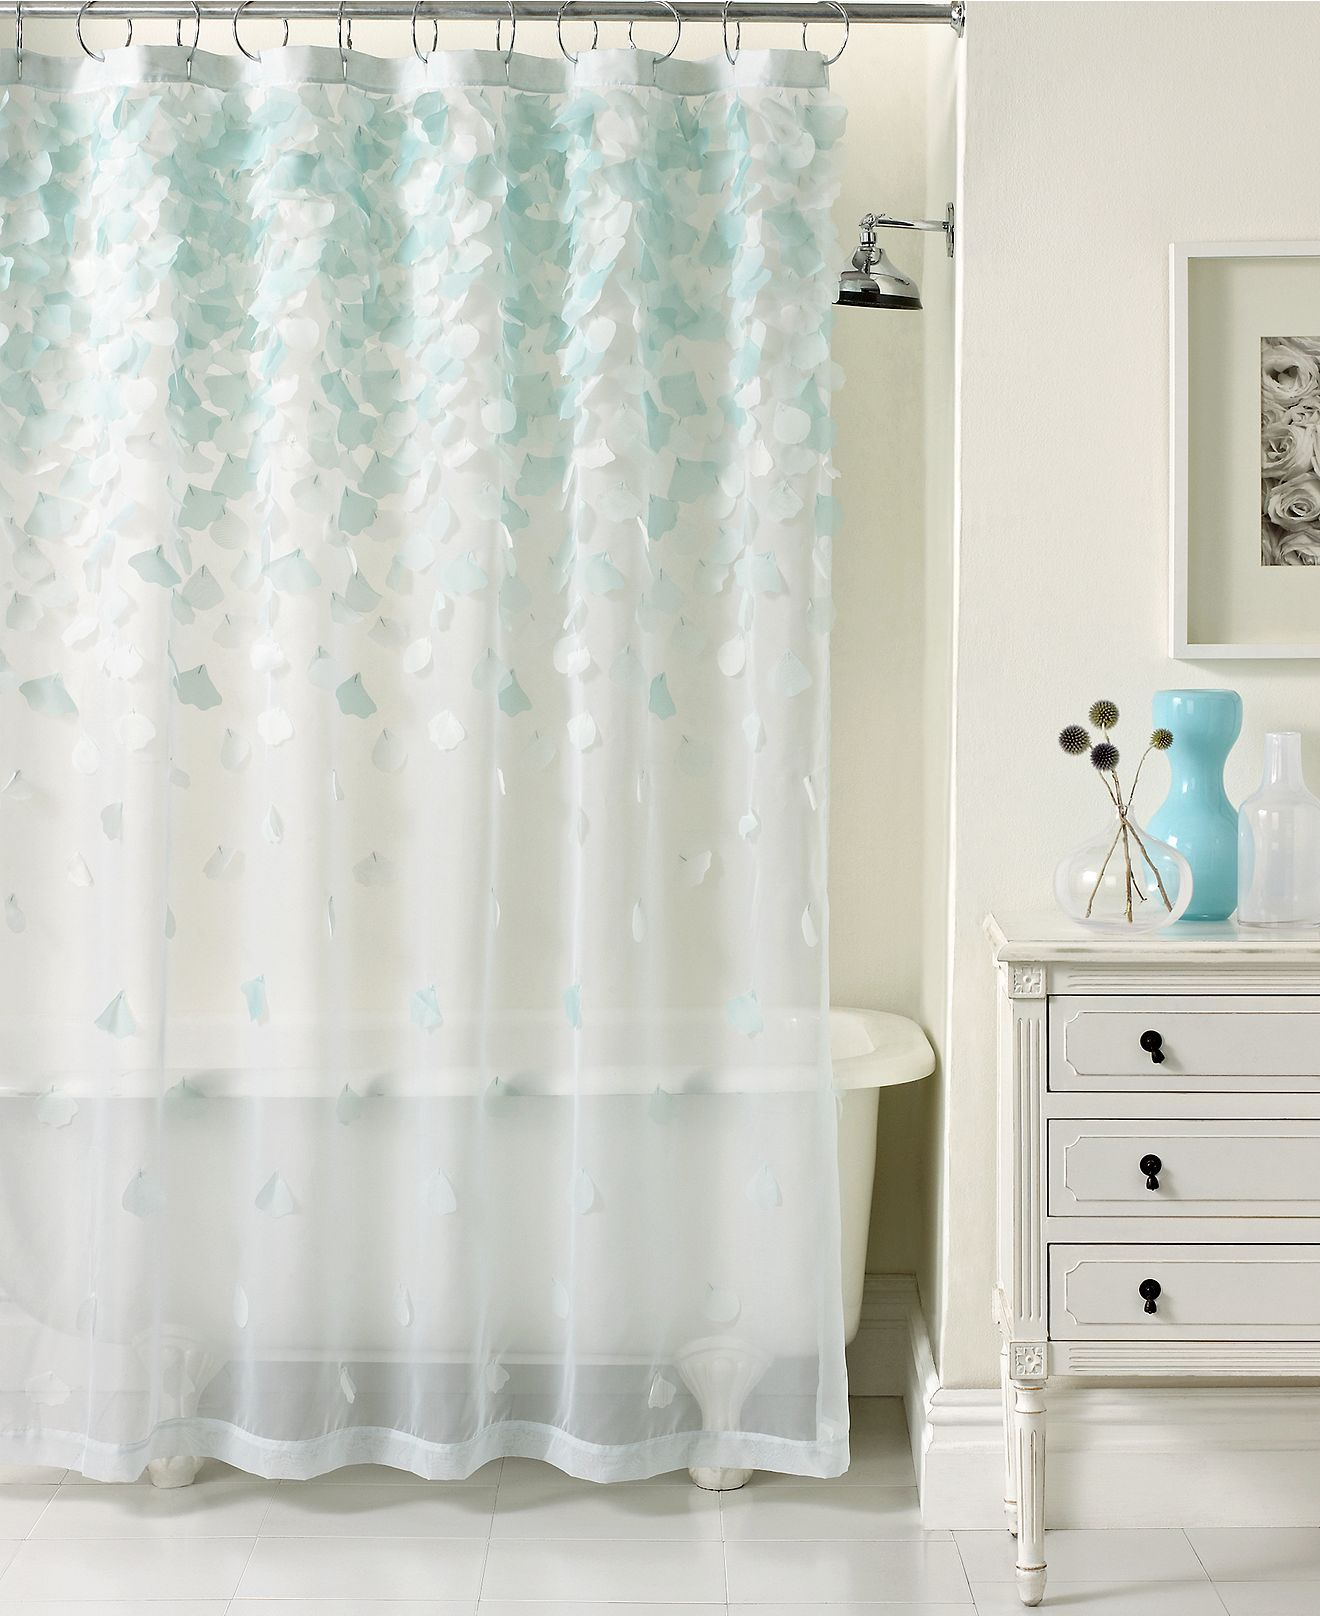 Shop for Bathroom Accessories online at Petals aplenty  Dainty petals on a  sheer backdrop disperse down this lovely shower curtain from Martha Stewart. Martha Stewart Collection Falling Petals Shower Curtain   Home